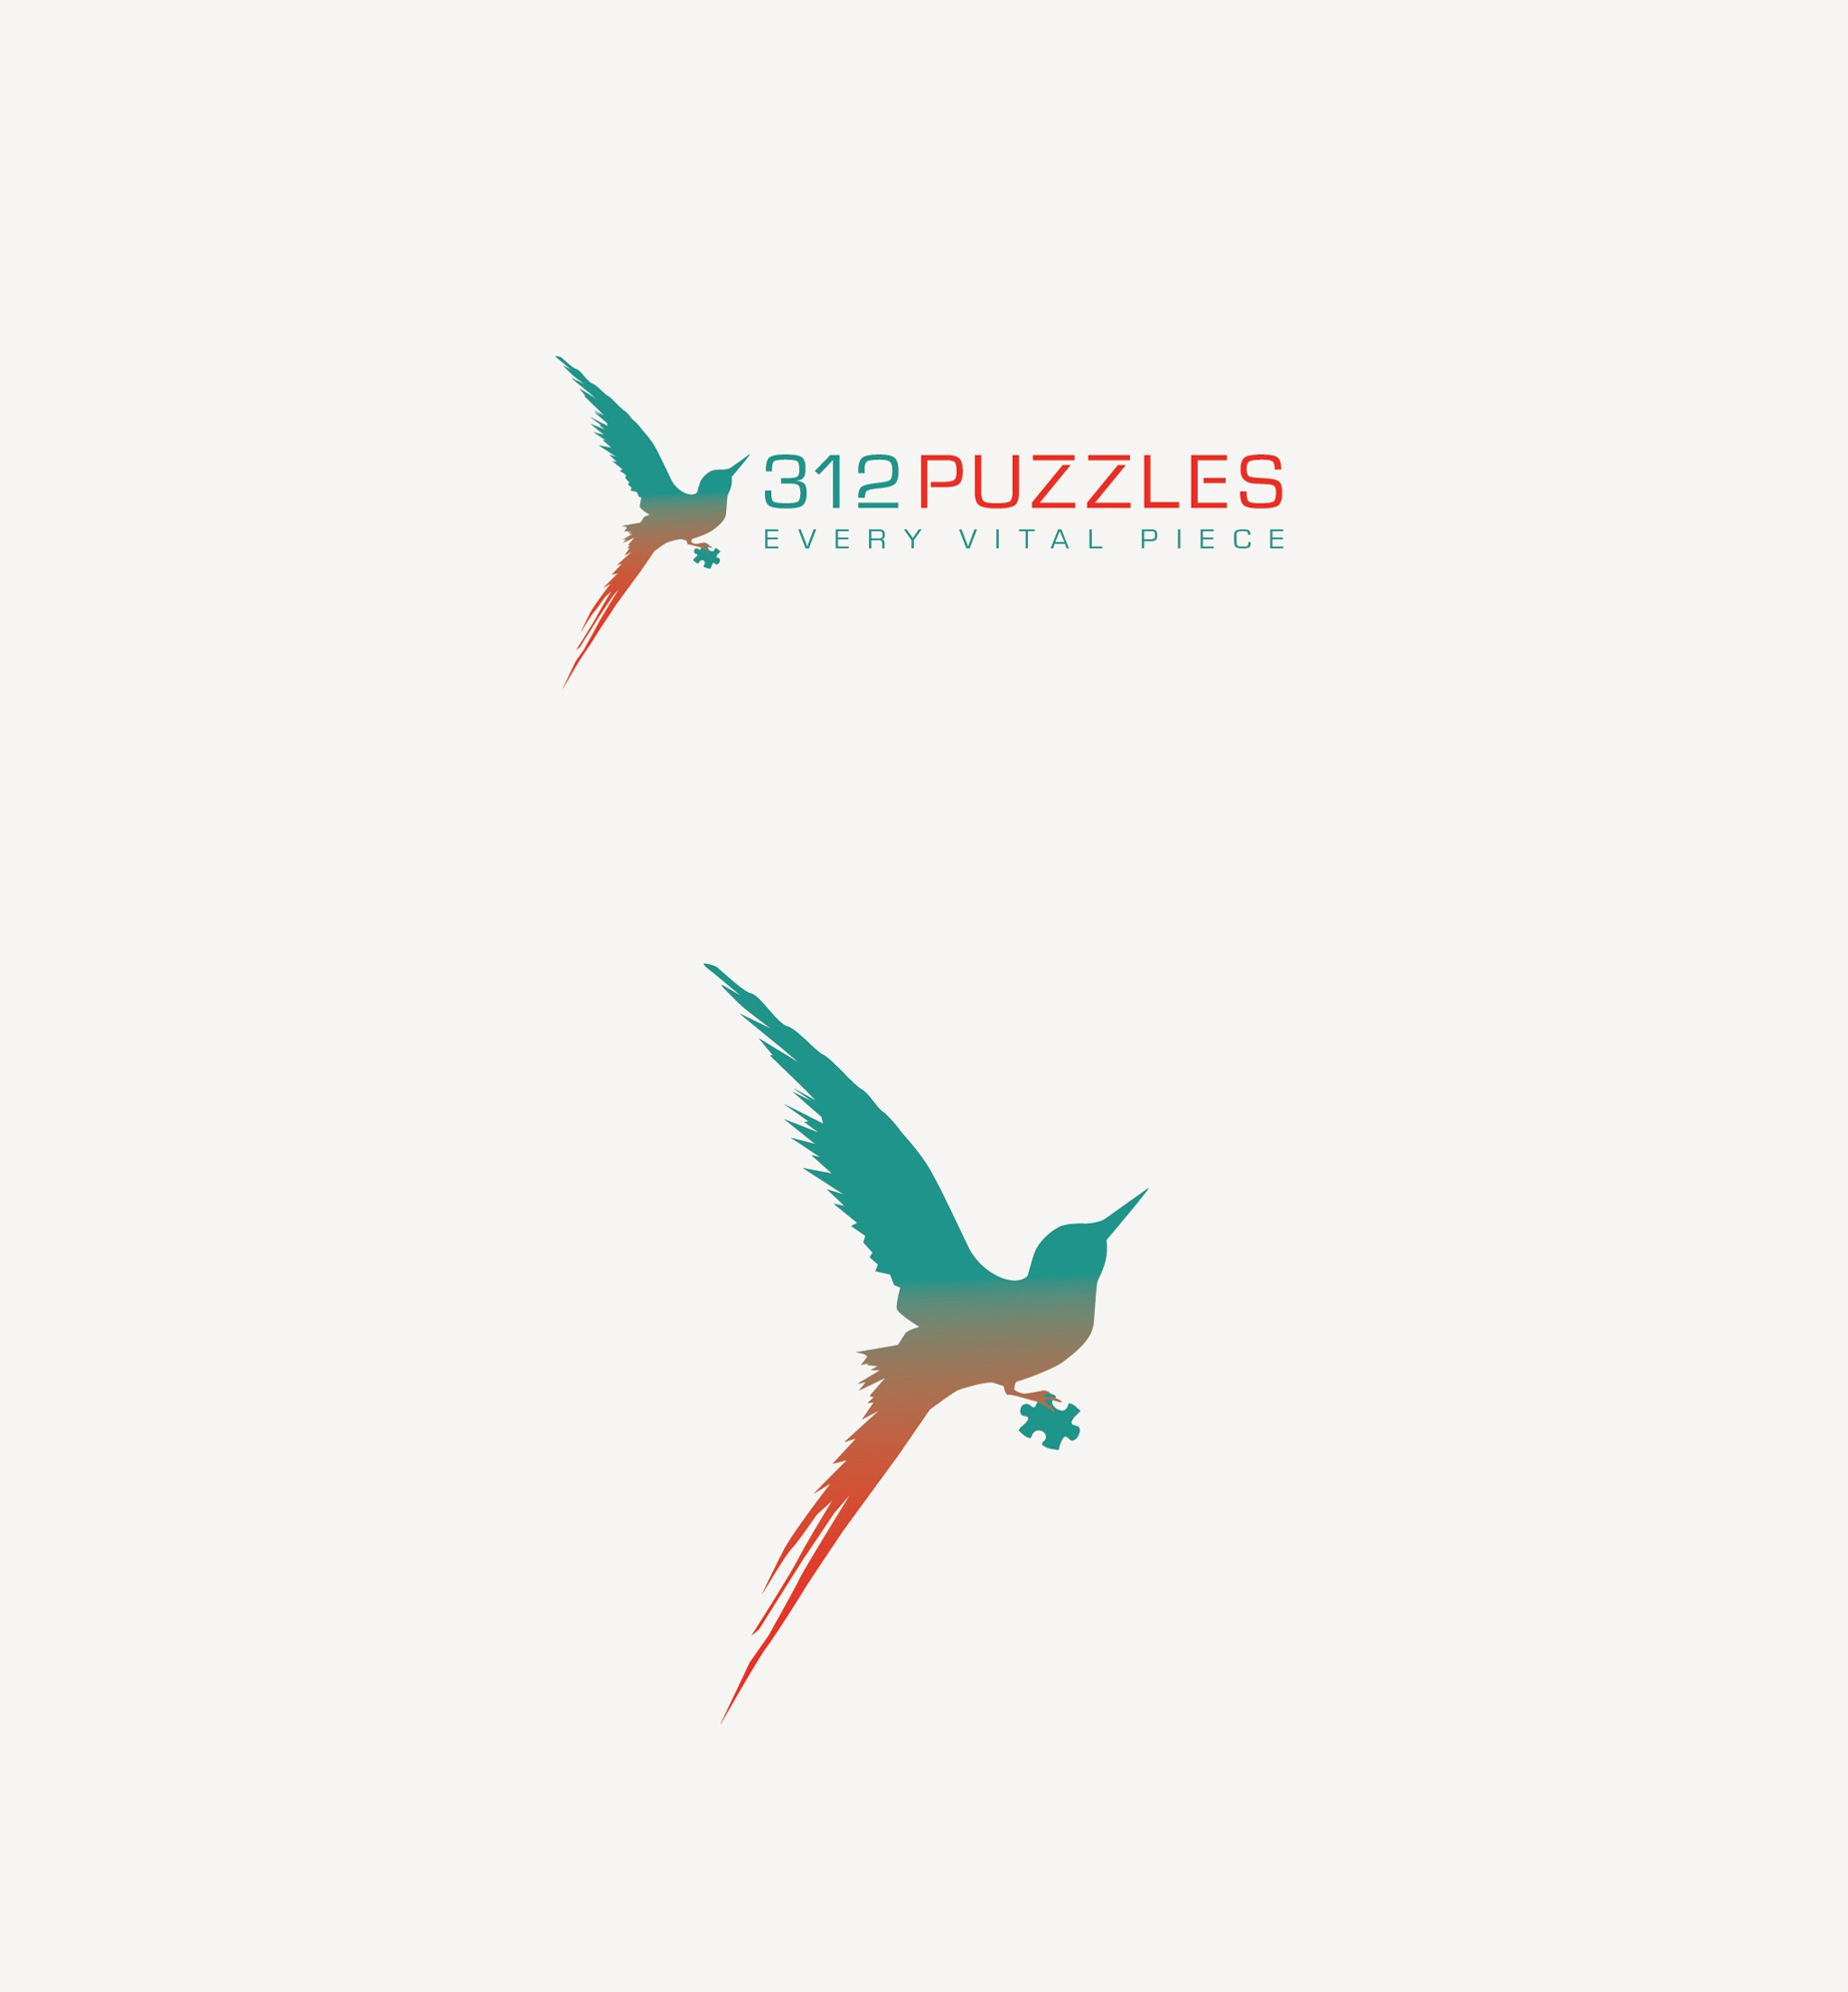 312 Puzzles needs your help in designing a BRAND IDENTITY